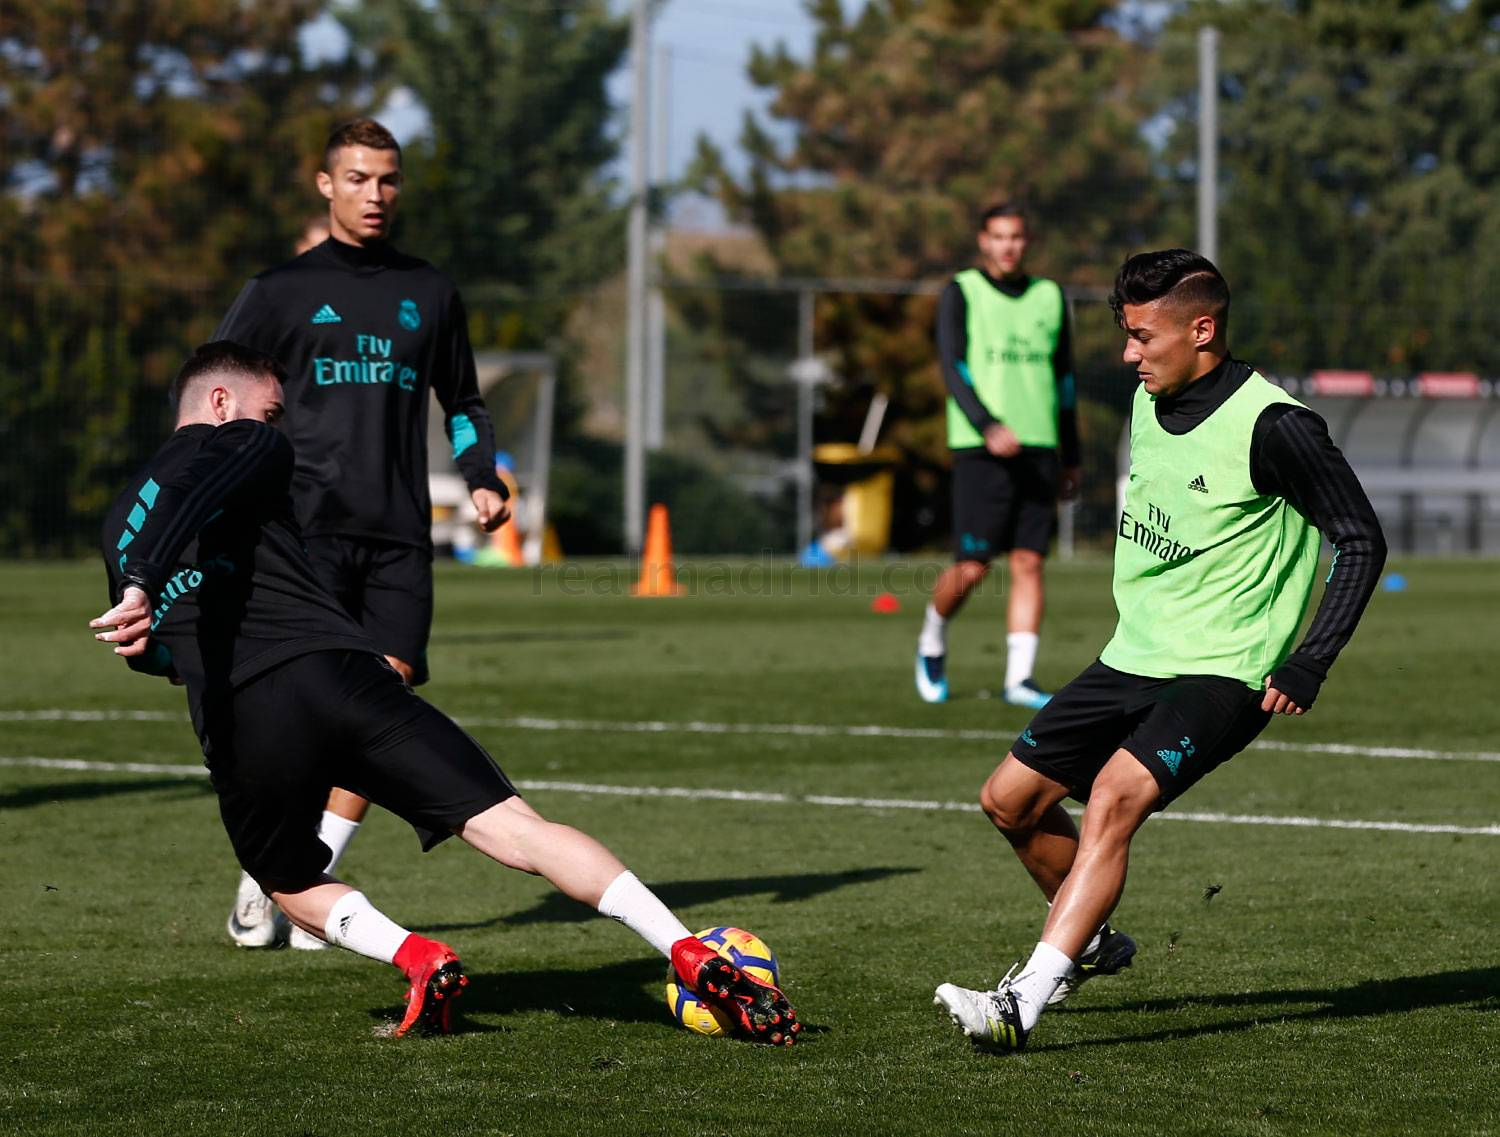 Real Madrid - Entrenamiento del Real Madrid - 09-11-2017